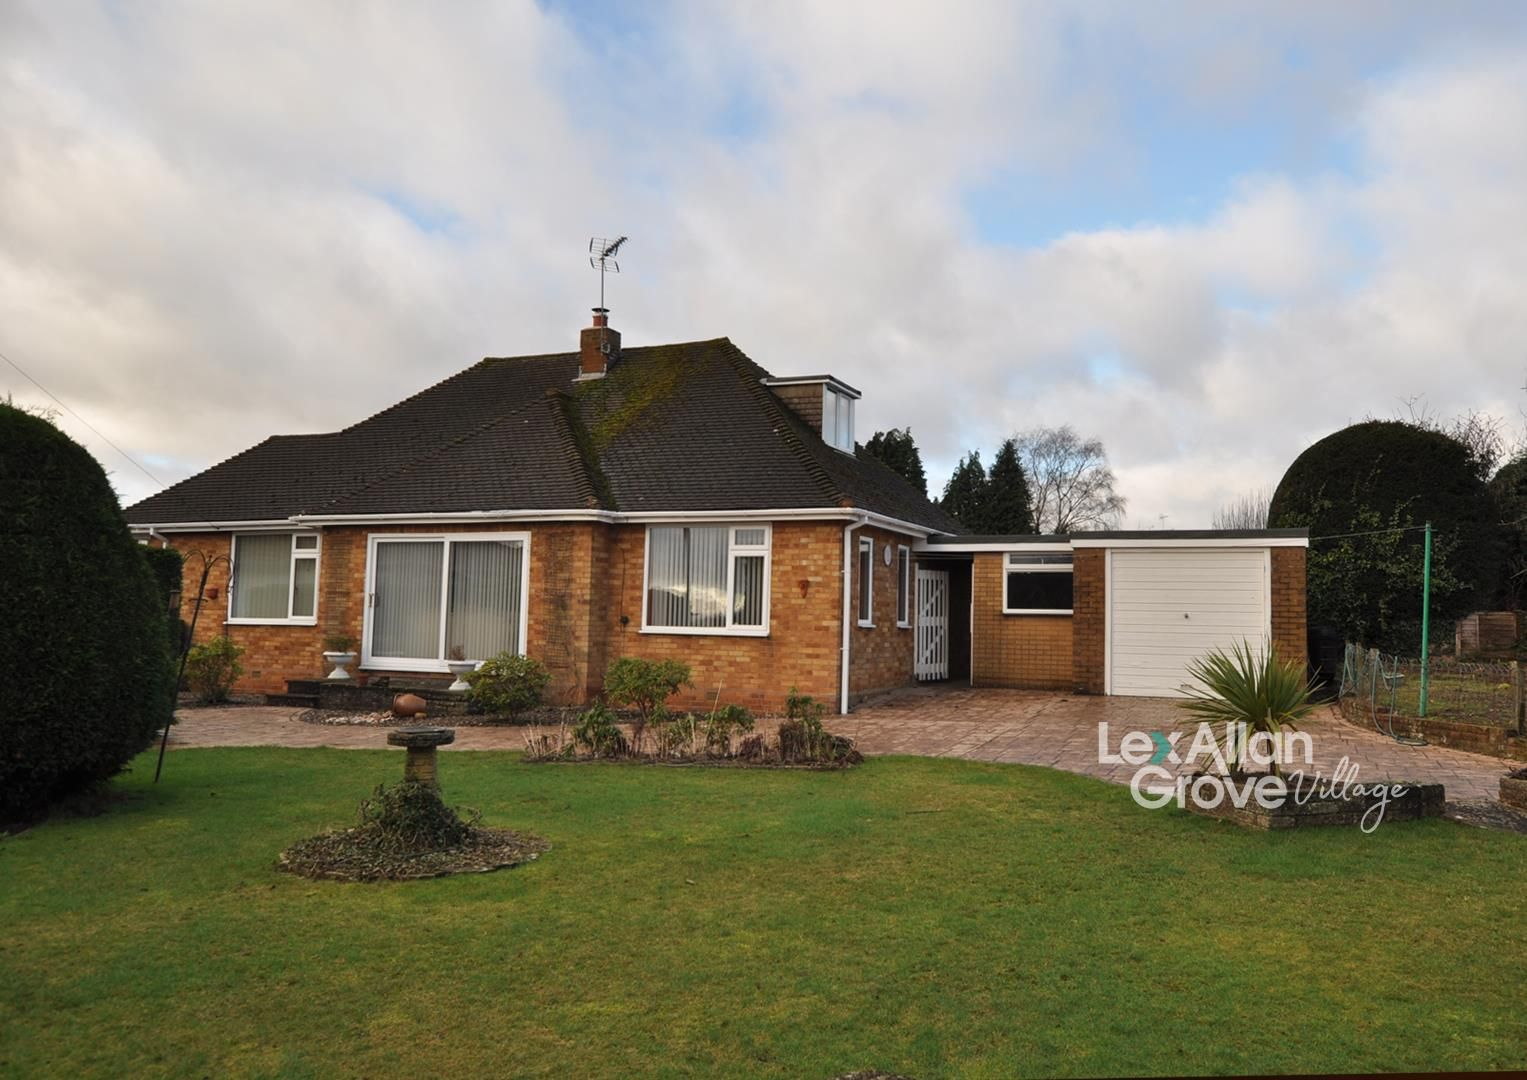 3 bed detached-bungalow for sale in Hagley, DY8